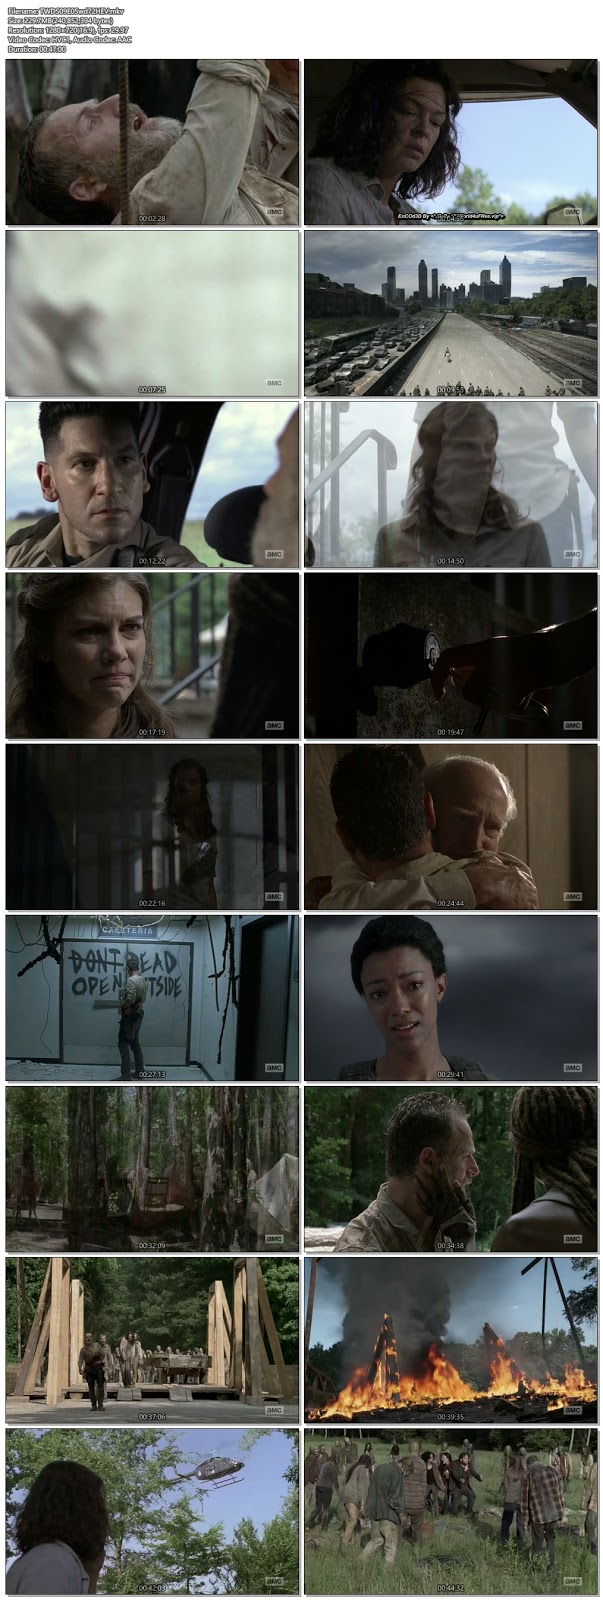 The Walking Dead S09 Episode 05 720p HDTV 200mb ESub x265 HEVC, hollwood tv series The walking dead 2018 720p hdtv tv show hevc x265 hdrip 250mb 270mb free download or watch online at world4ufree.vip